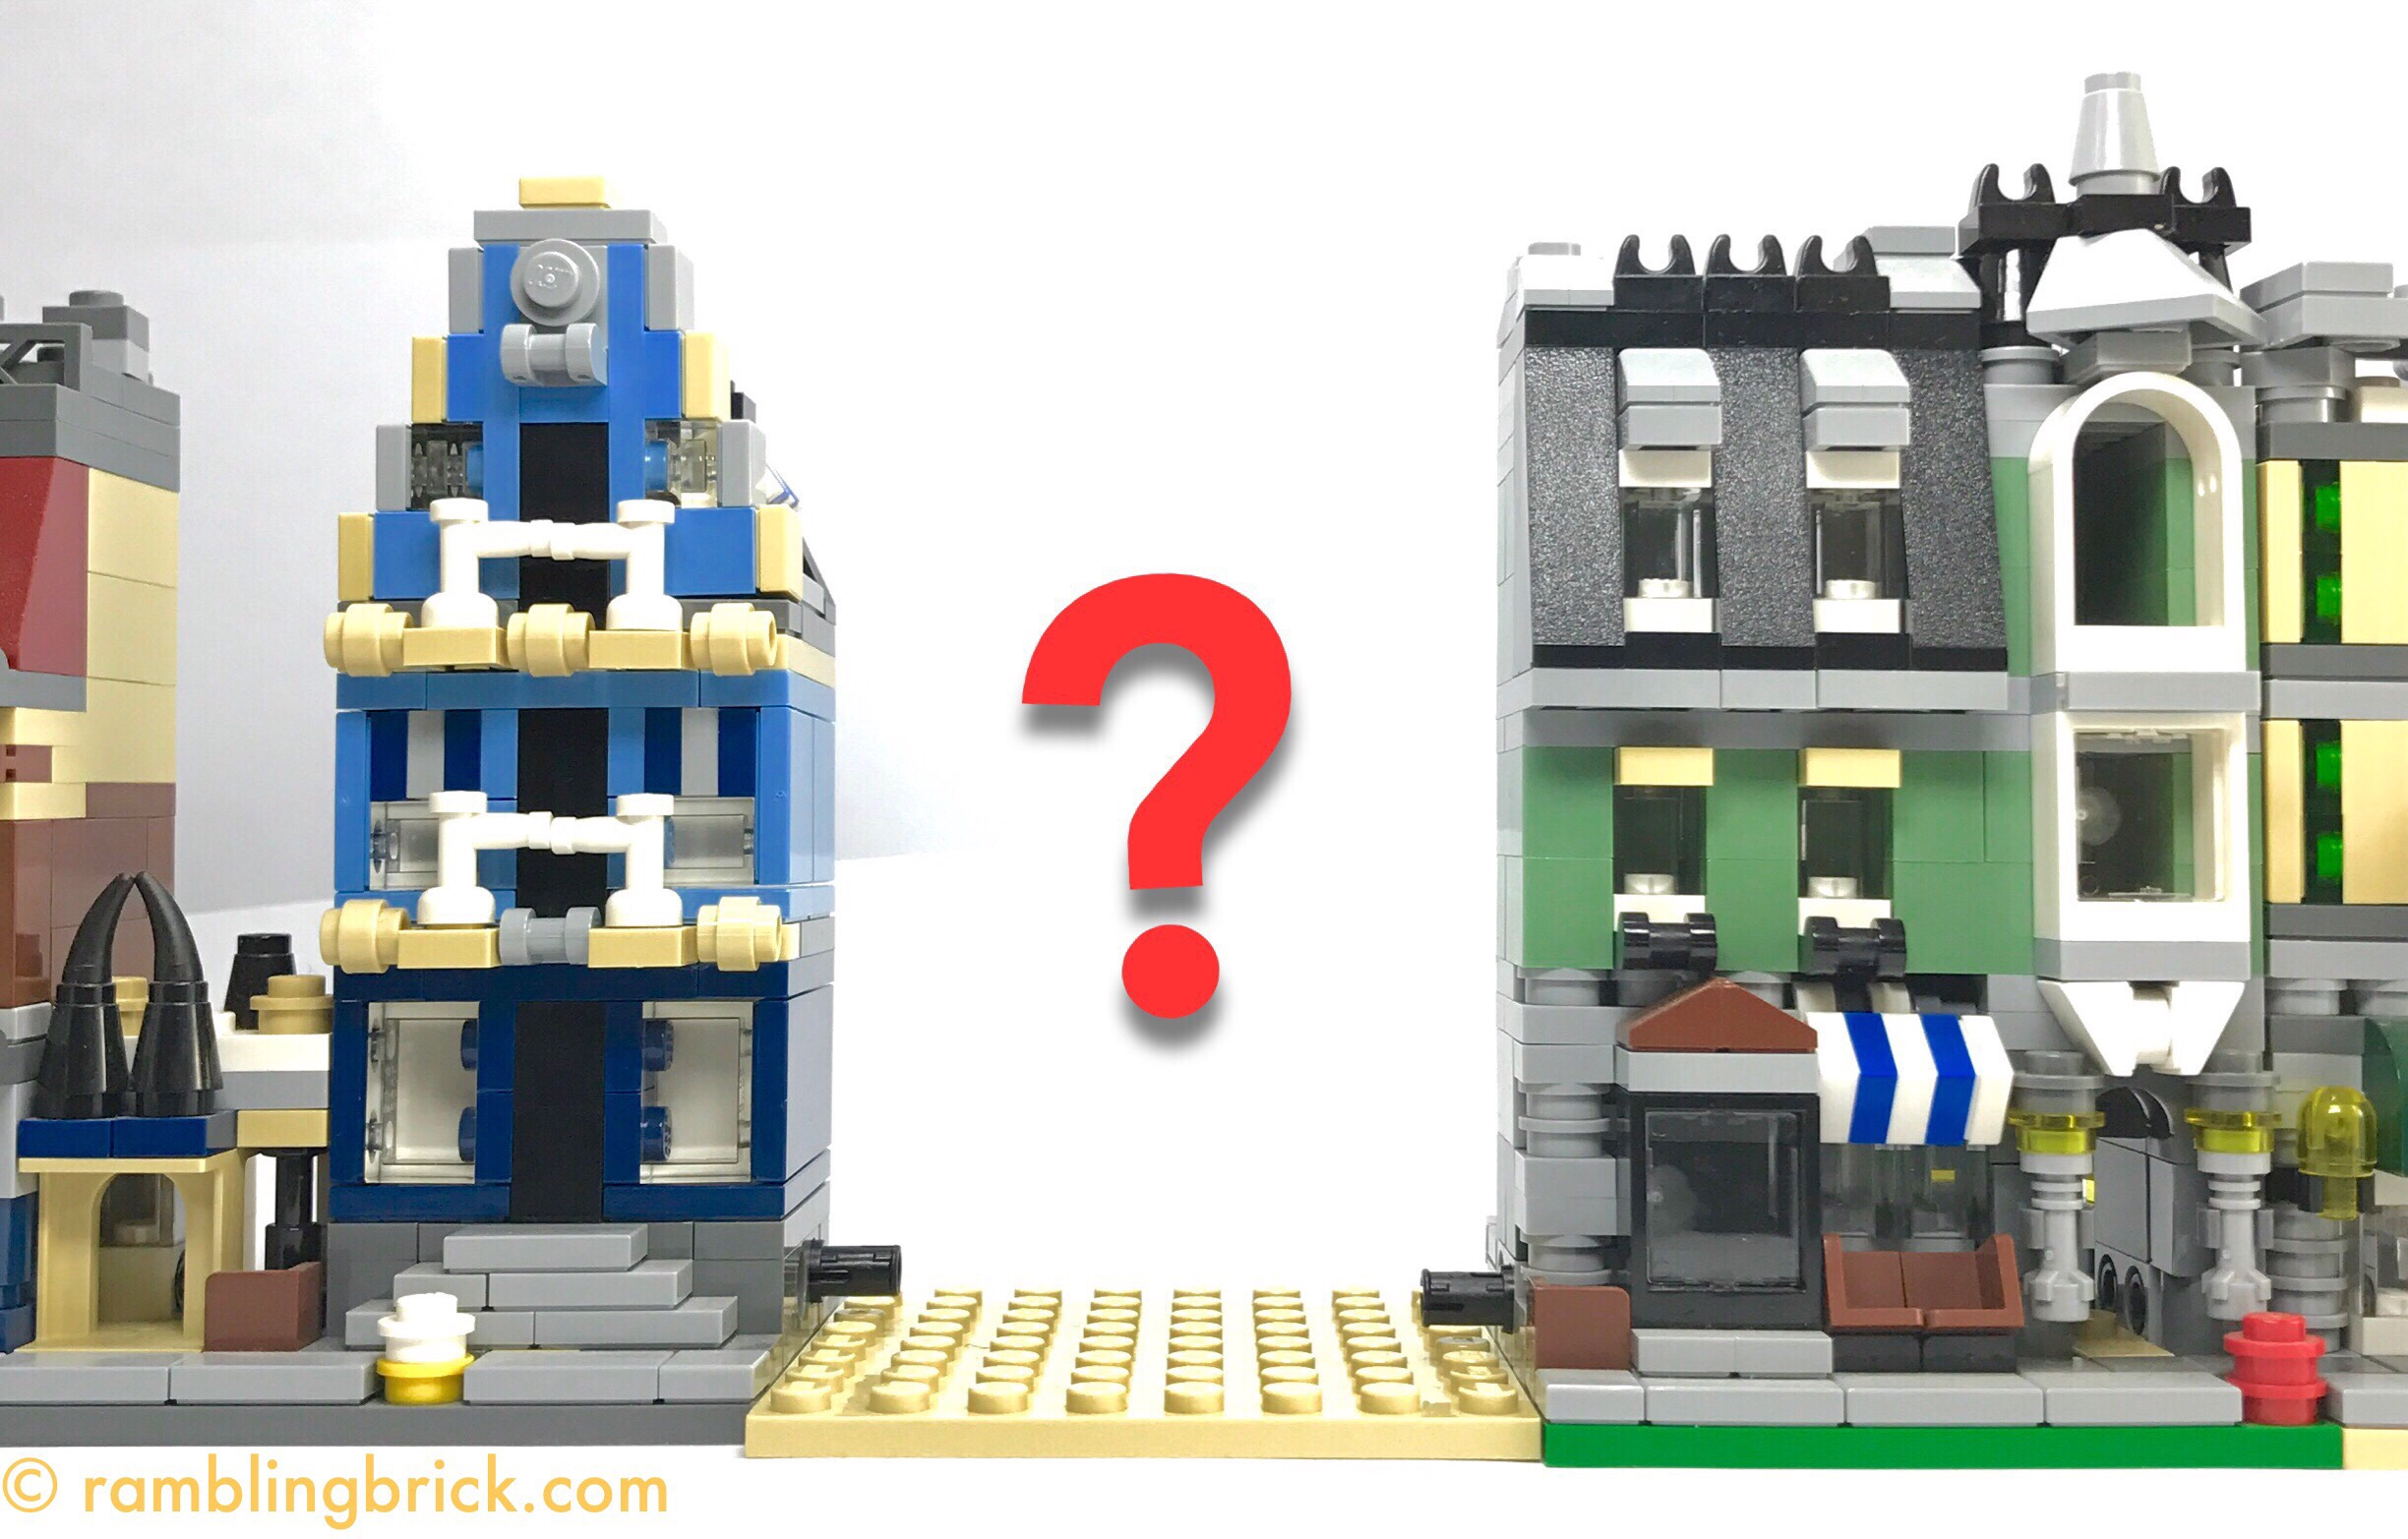 The 10th Anniversary Celebrations For The Lego Creator Modular Buildings Continues Legorebrick Have Just Announced An Opportunity To Win Every Modular